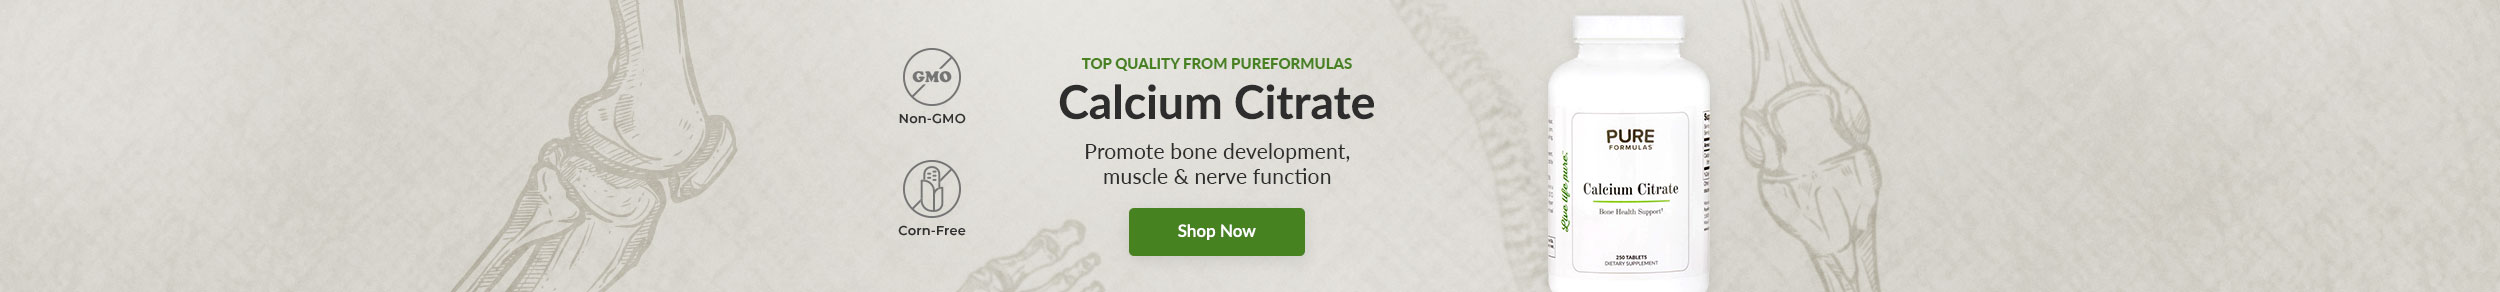 https://i3.pureformulas.net/images/static/Pureformulas-Bone-Health-Calcium-Citrate_slide2_061918.jpg